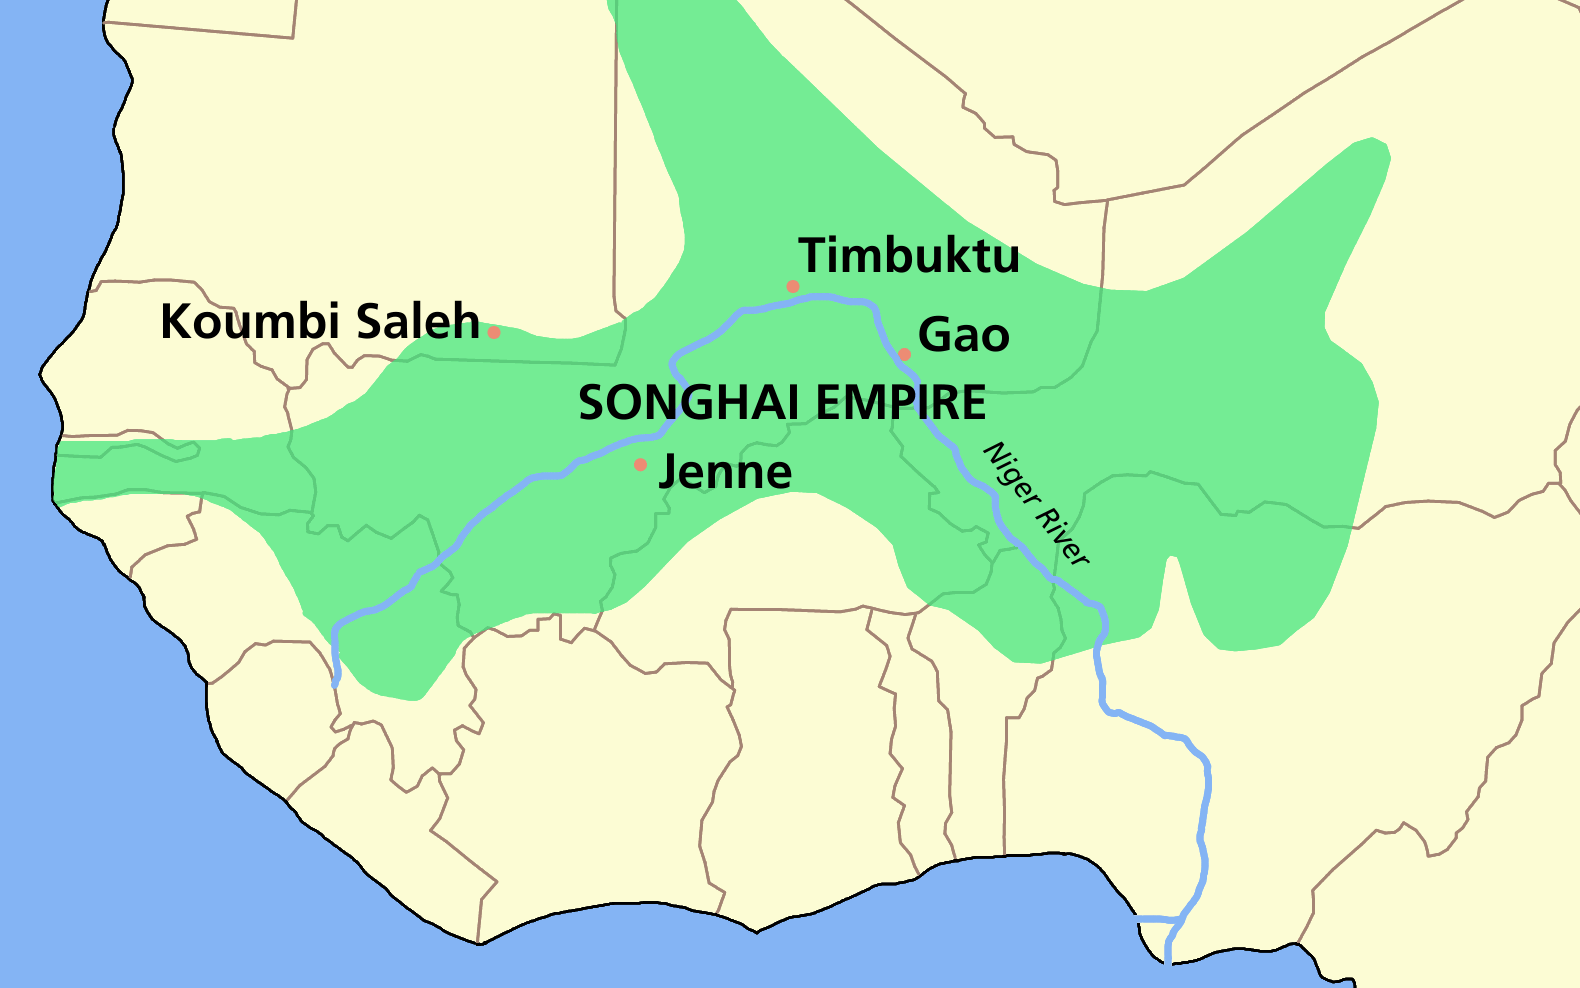 songhai empire | The Songhai Empire c. 1340–1591 | Recipes to Cook